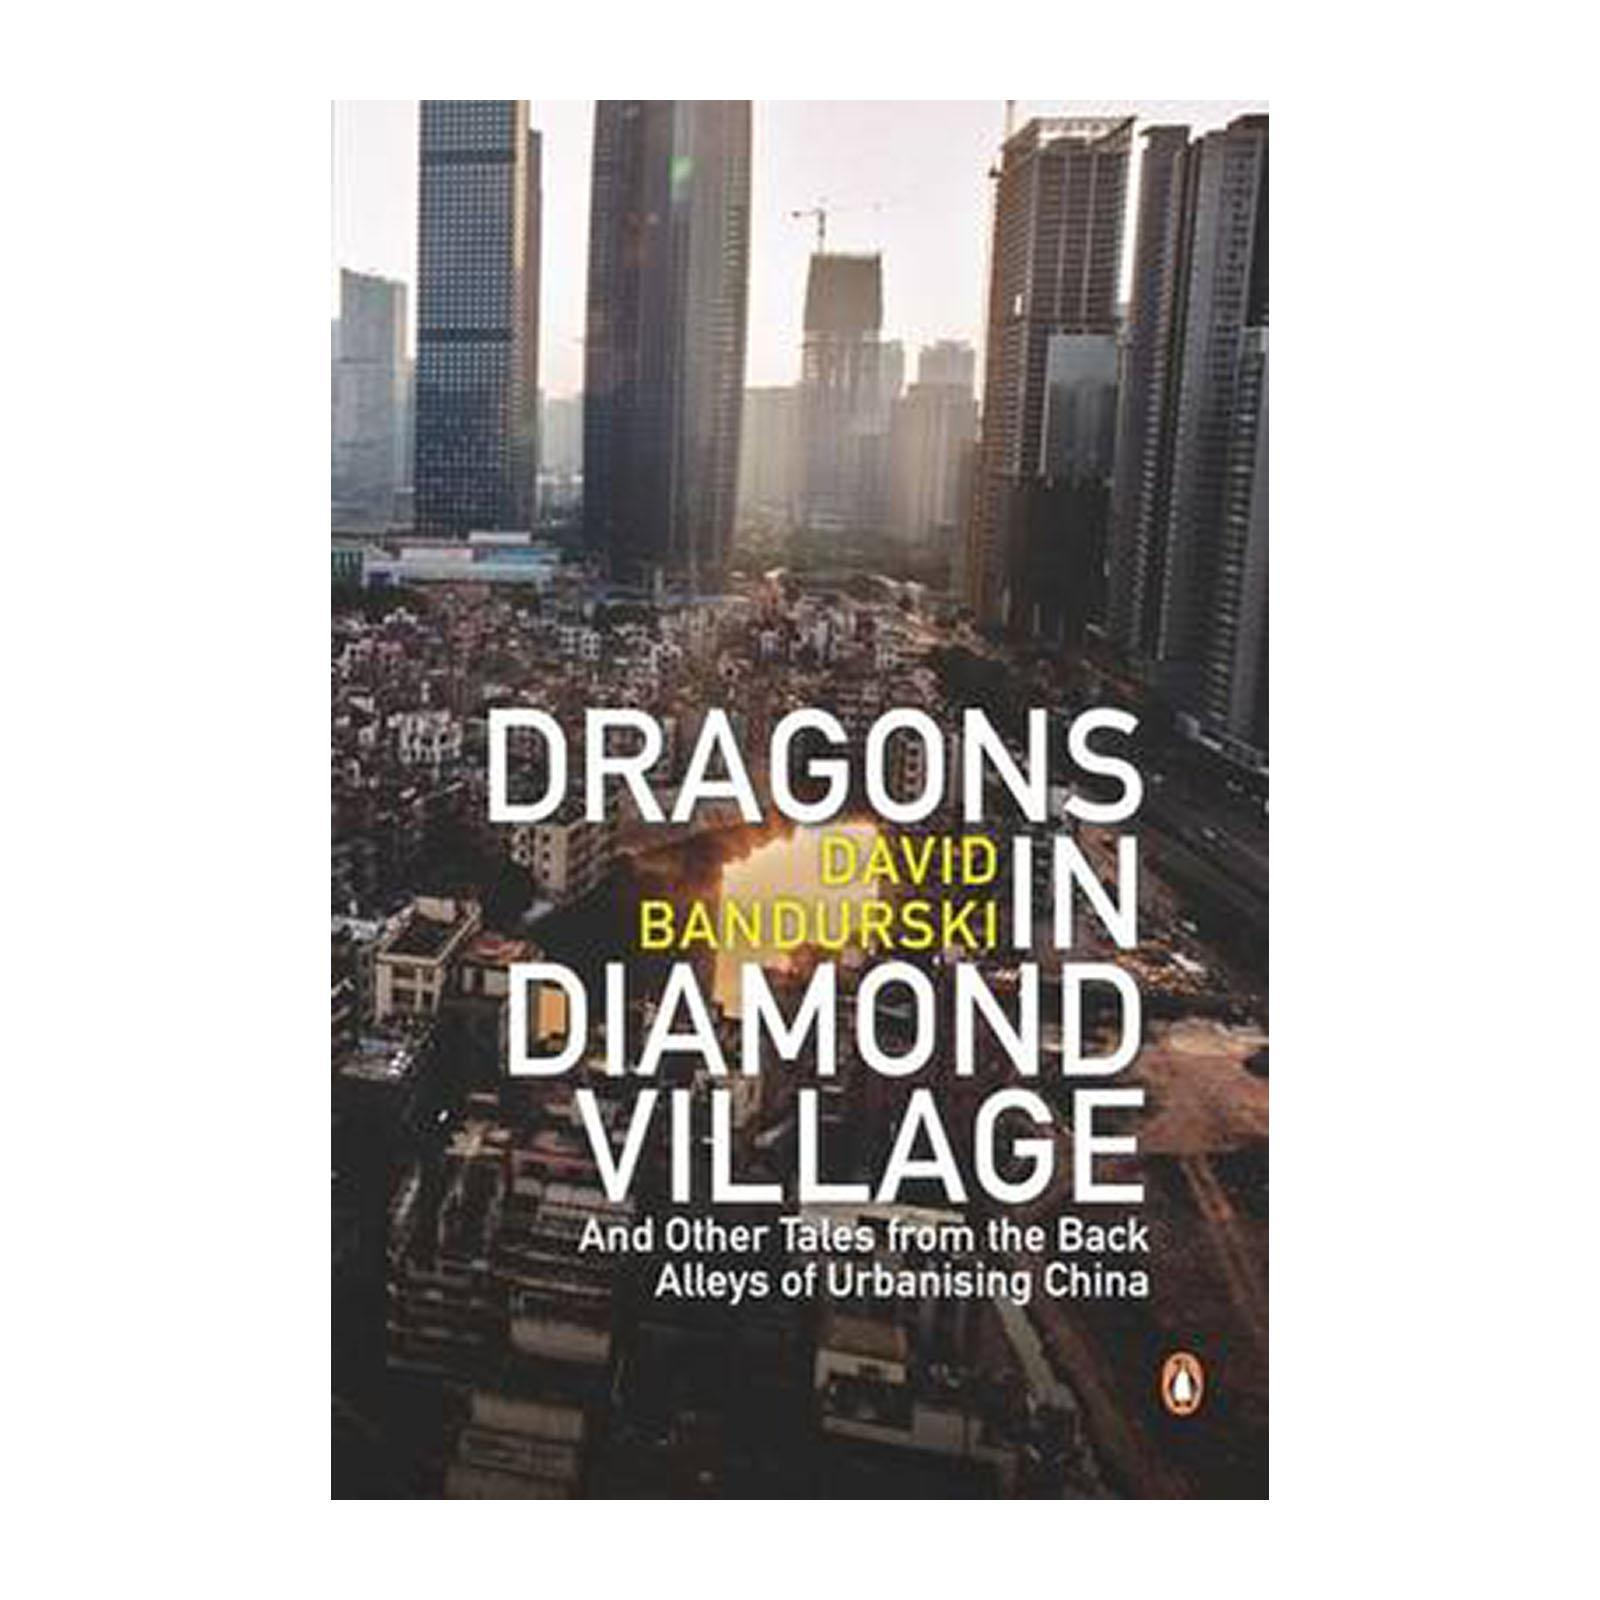 Dragons In Diamond Village And Other Tales From The Back Alleys Of Urbanising China (Paperback)